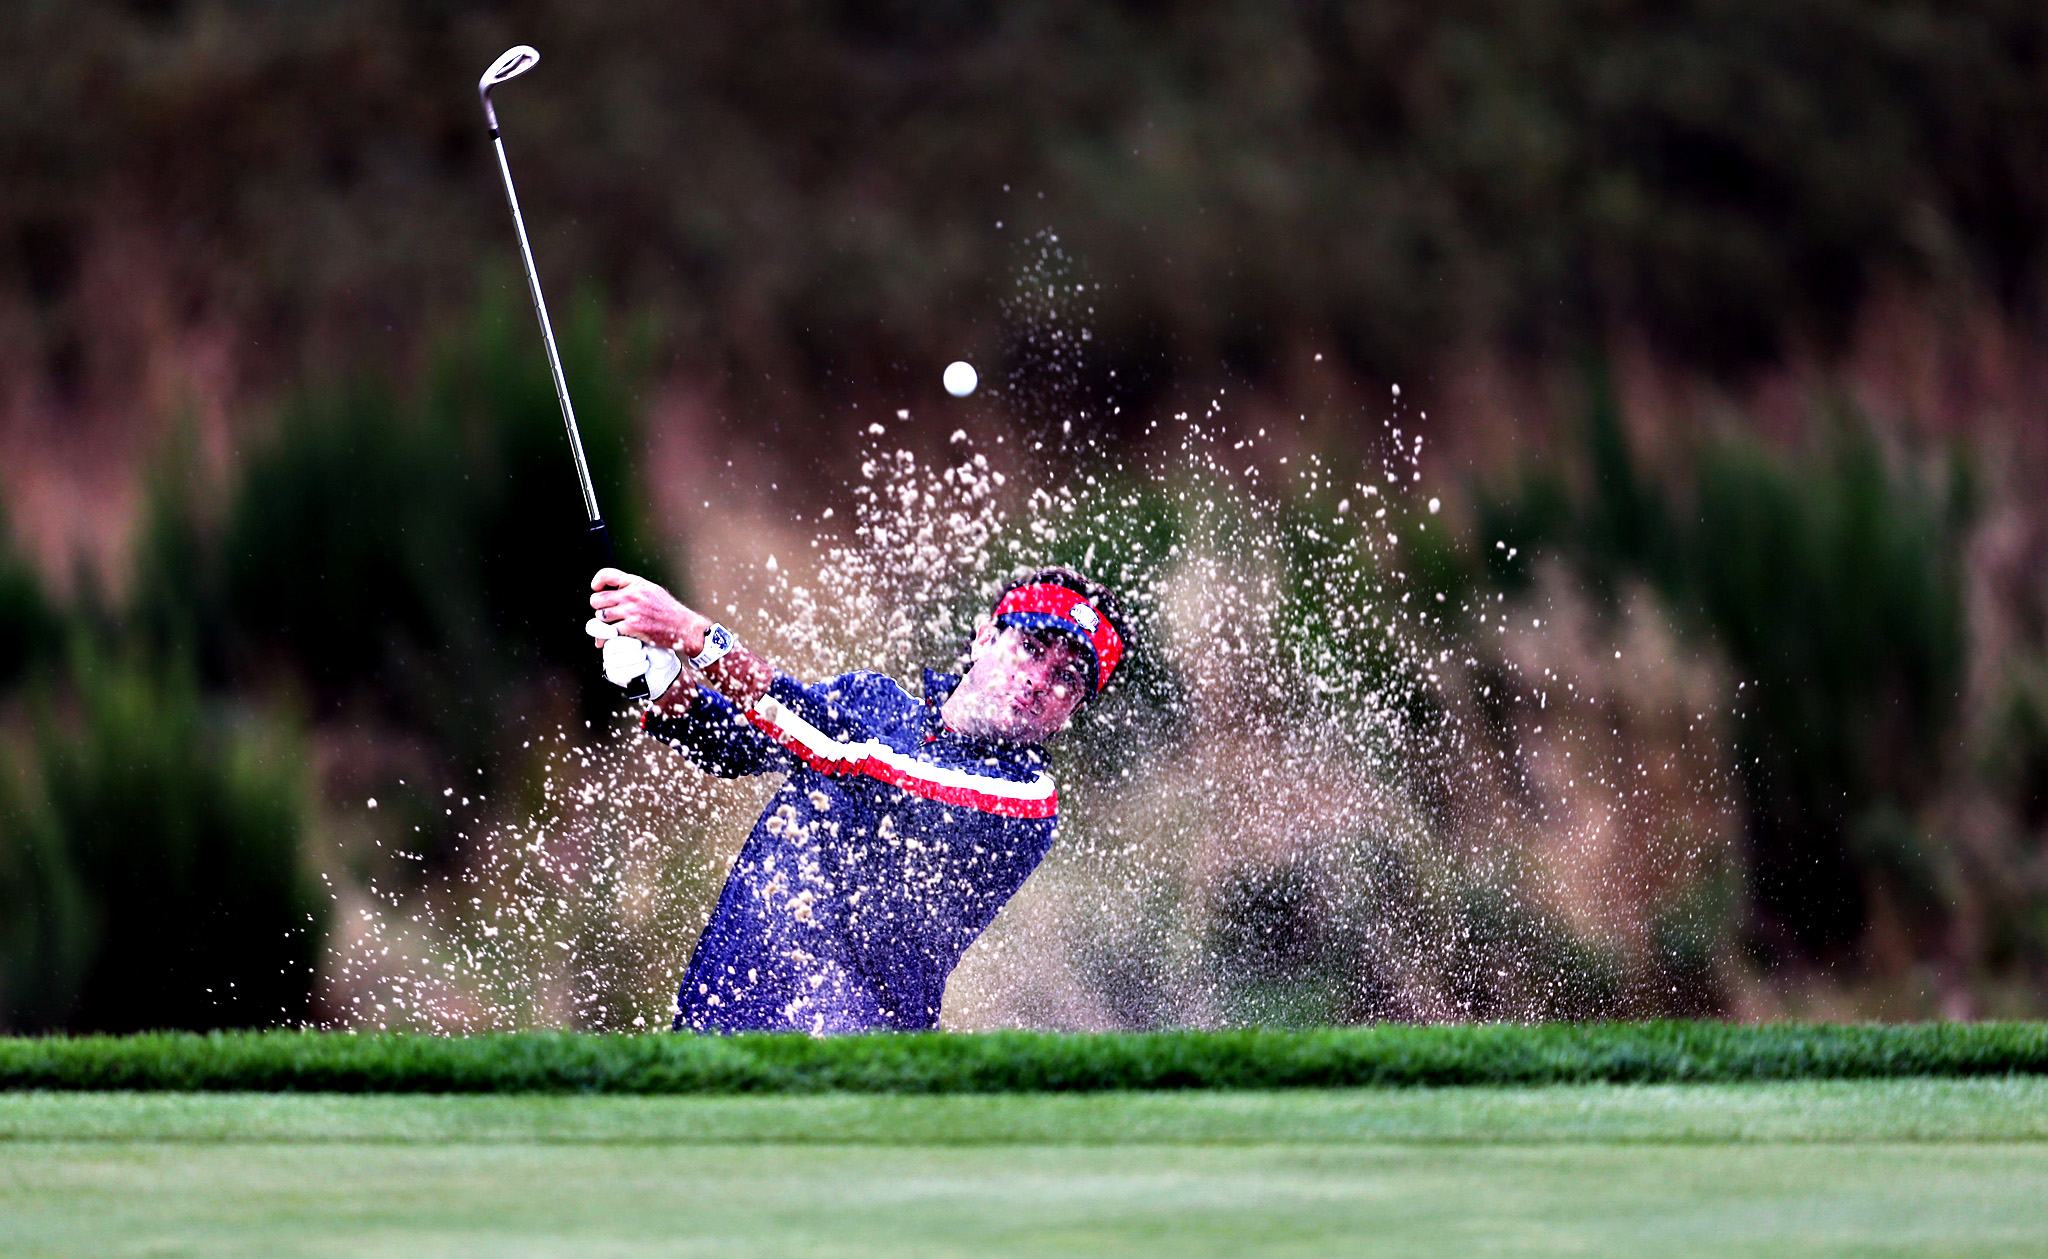 USA's Bubba Watson plays out of a bunker during a practice session at Gleneagles Golf Course, Perthshire.